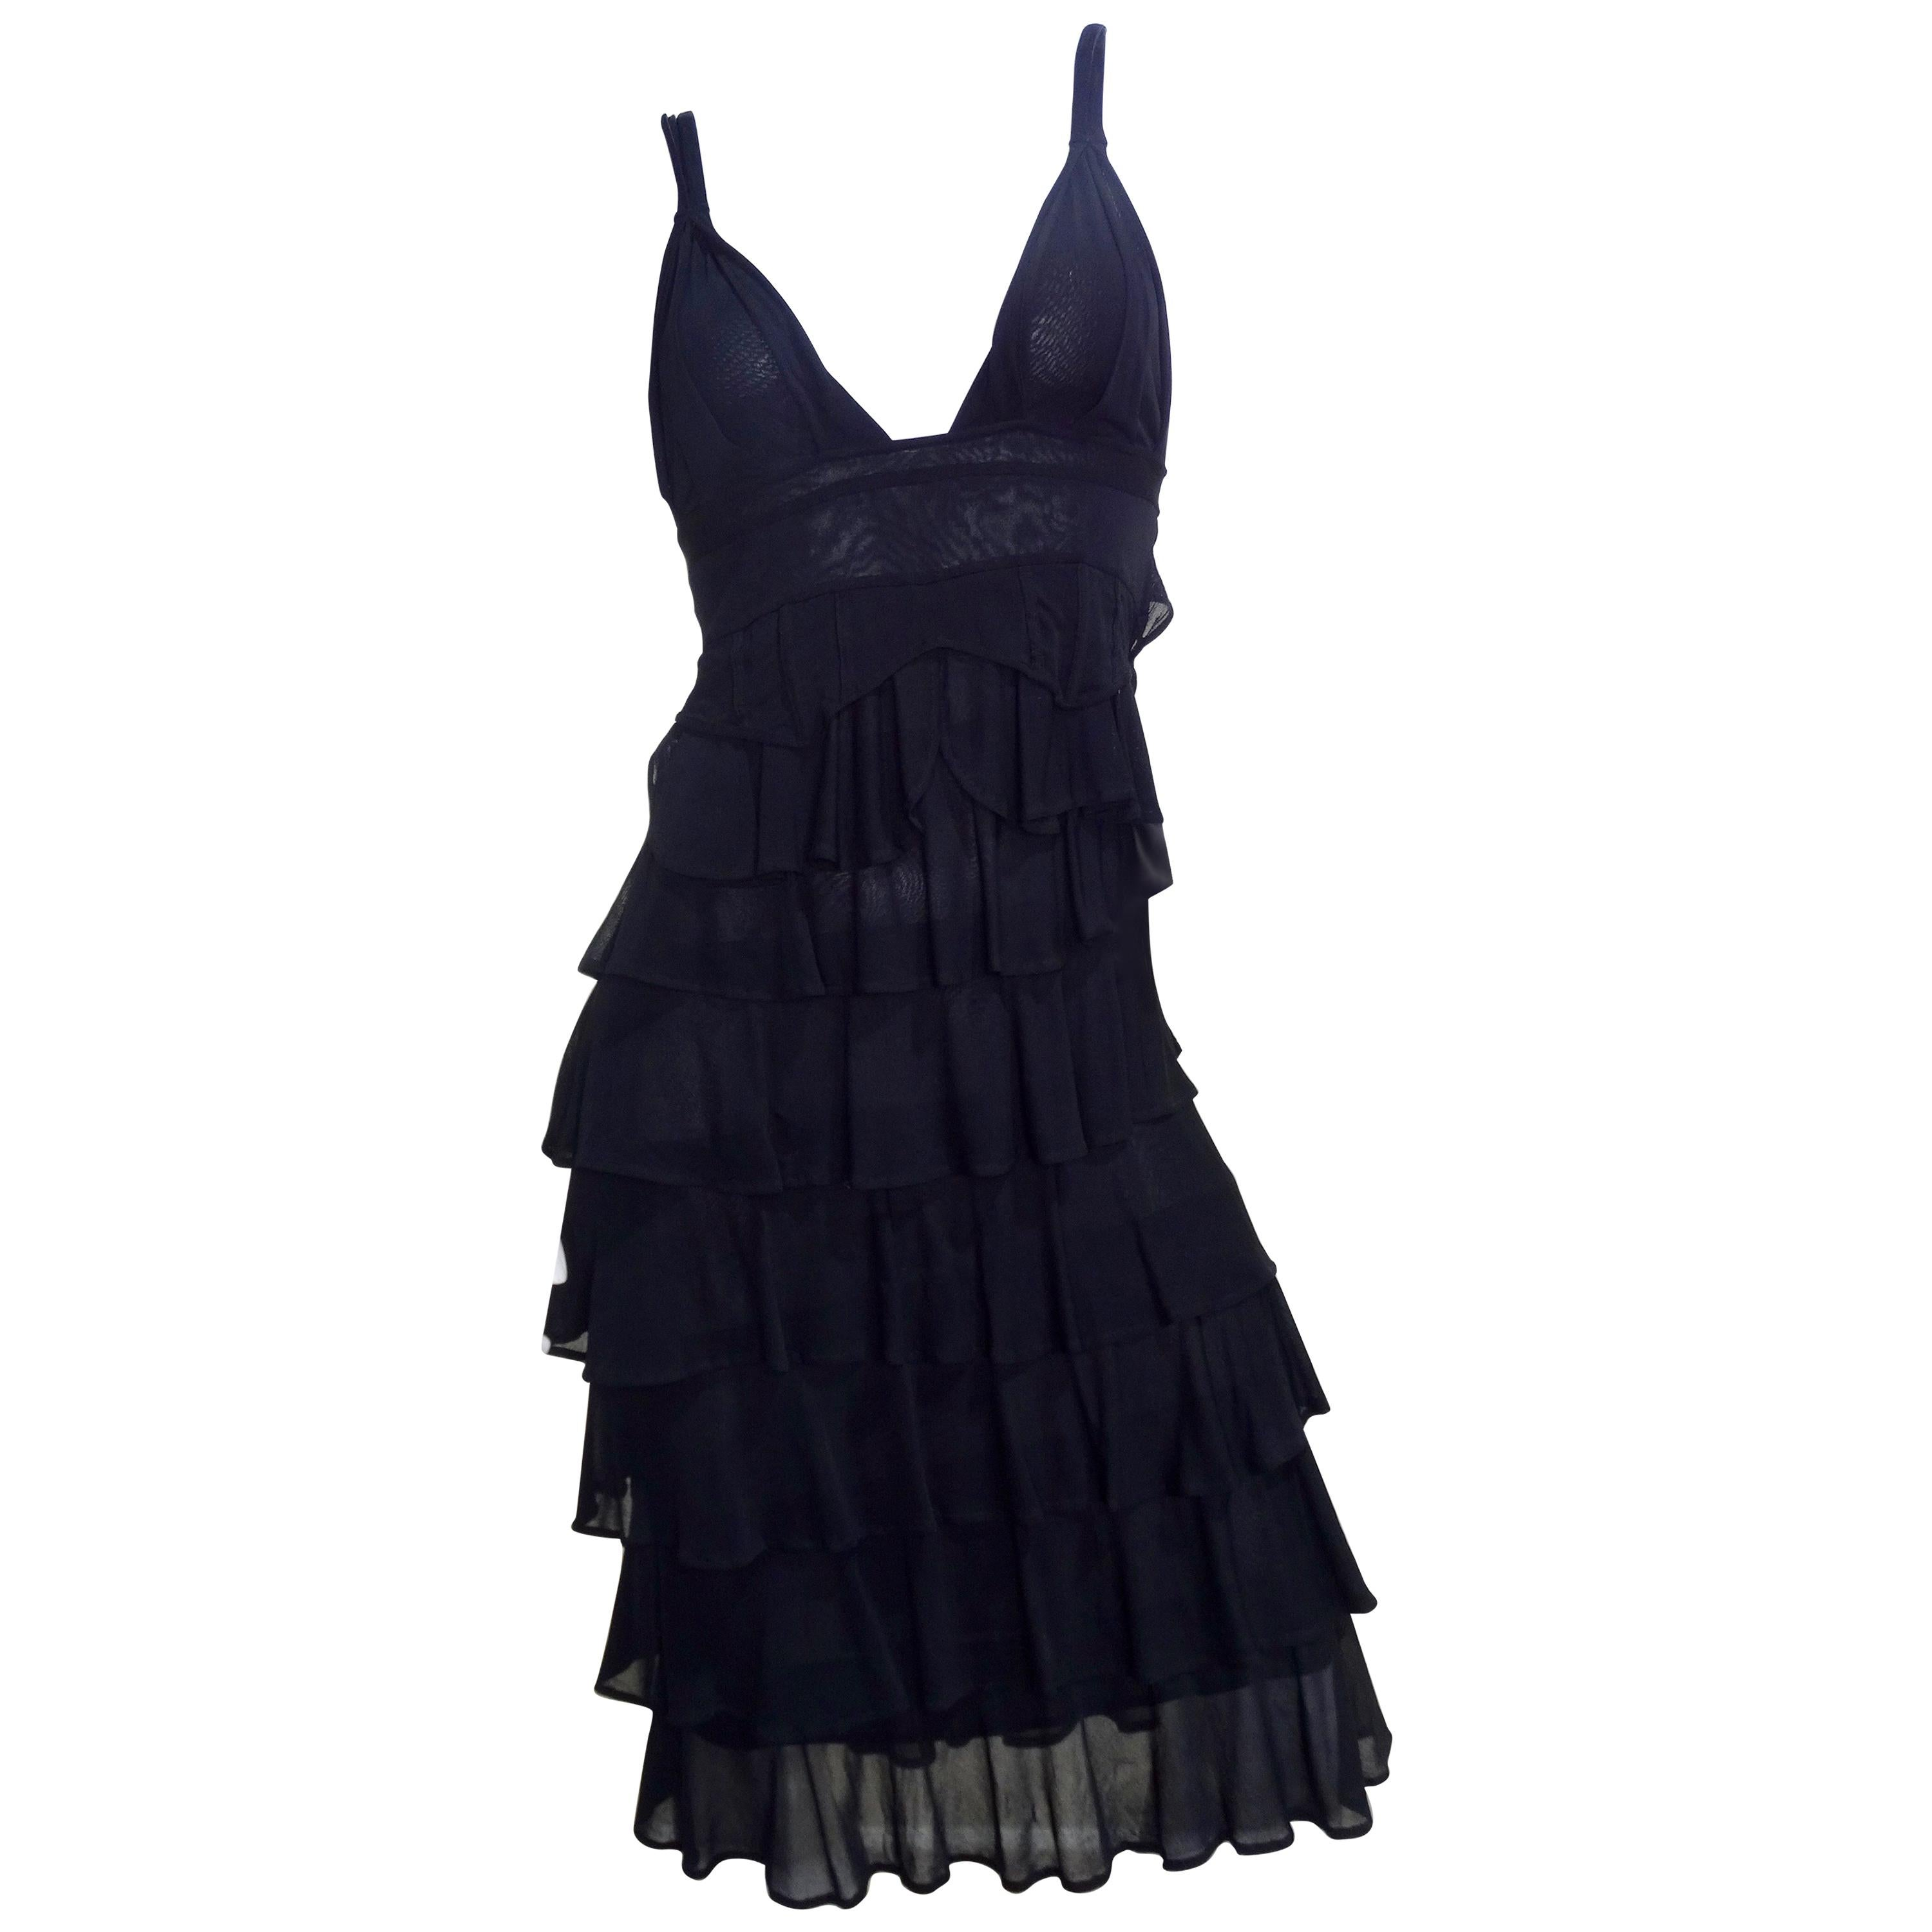 Tom Ford For YSL 2003 Sheer Ruffle Cocktail Dress